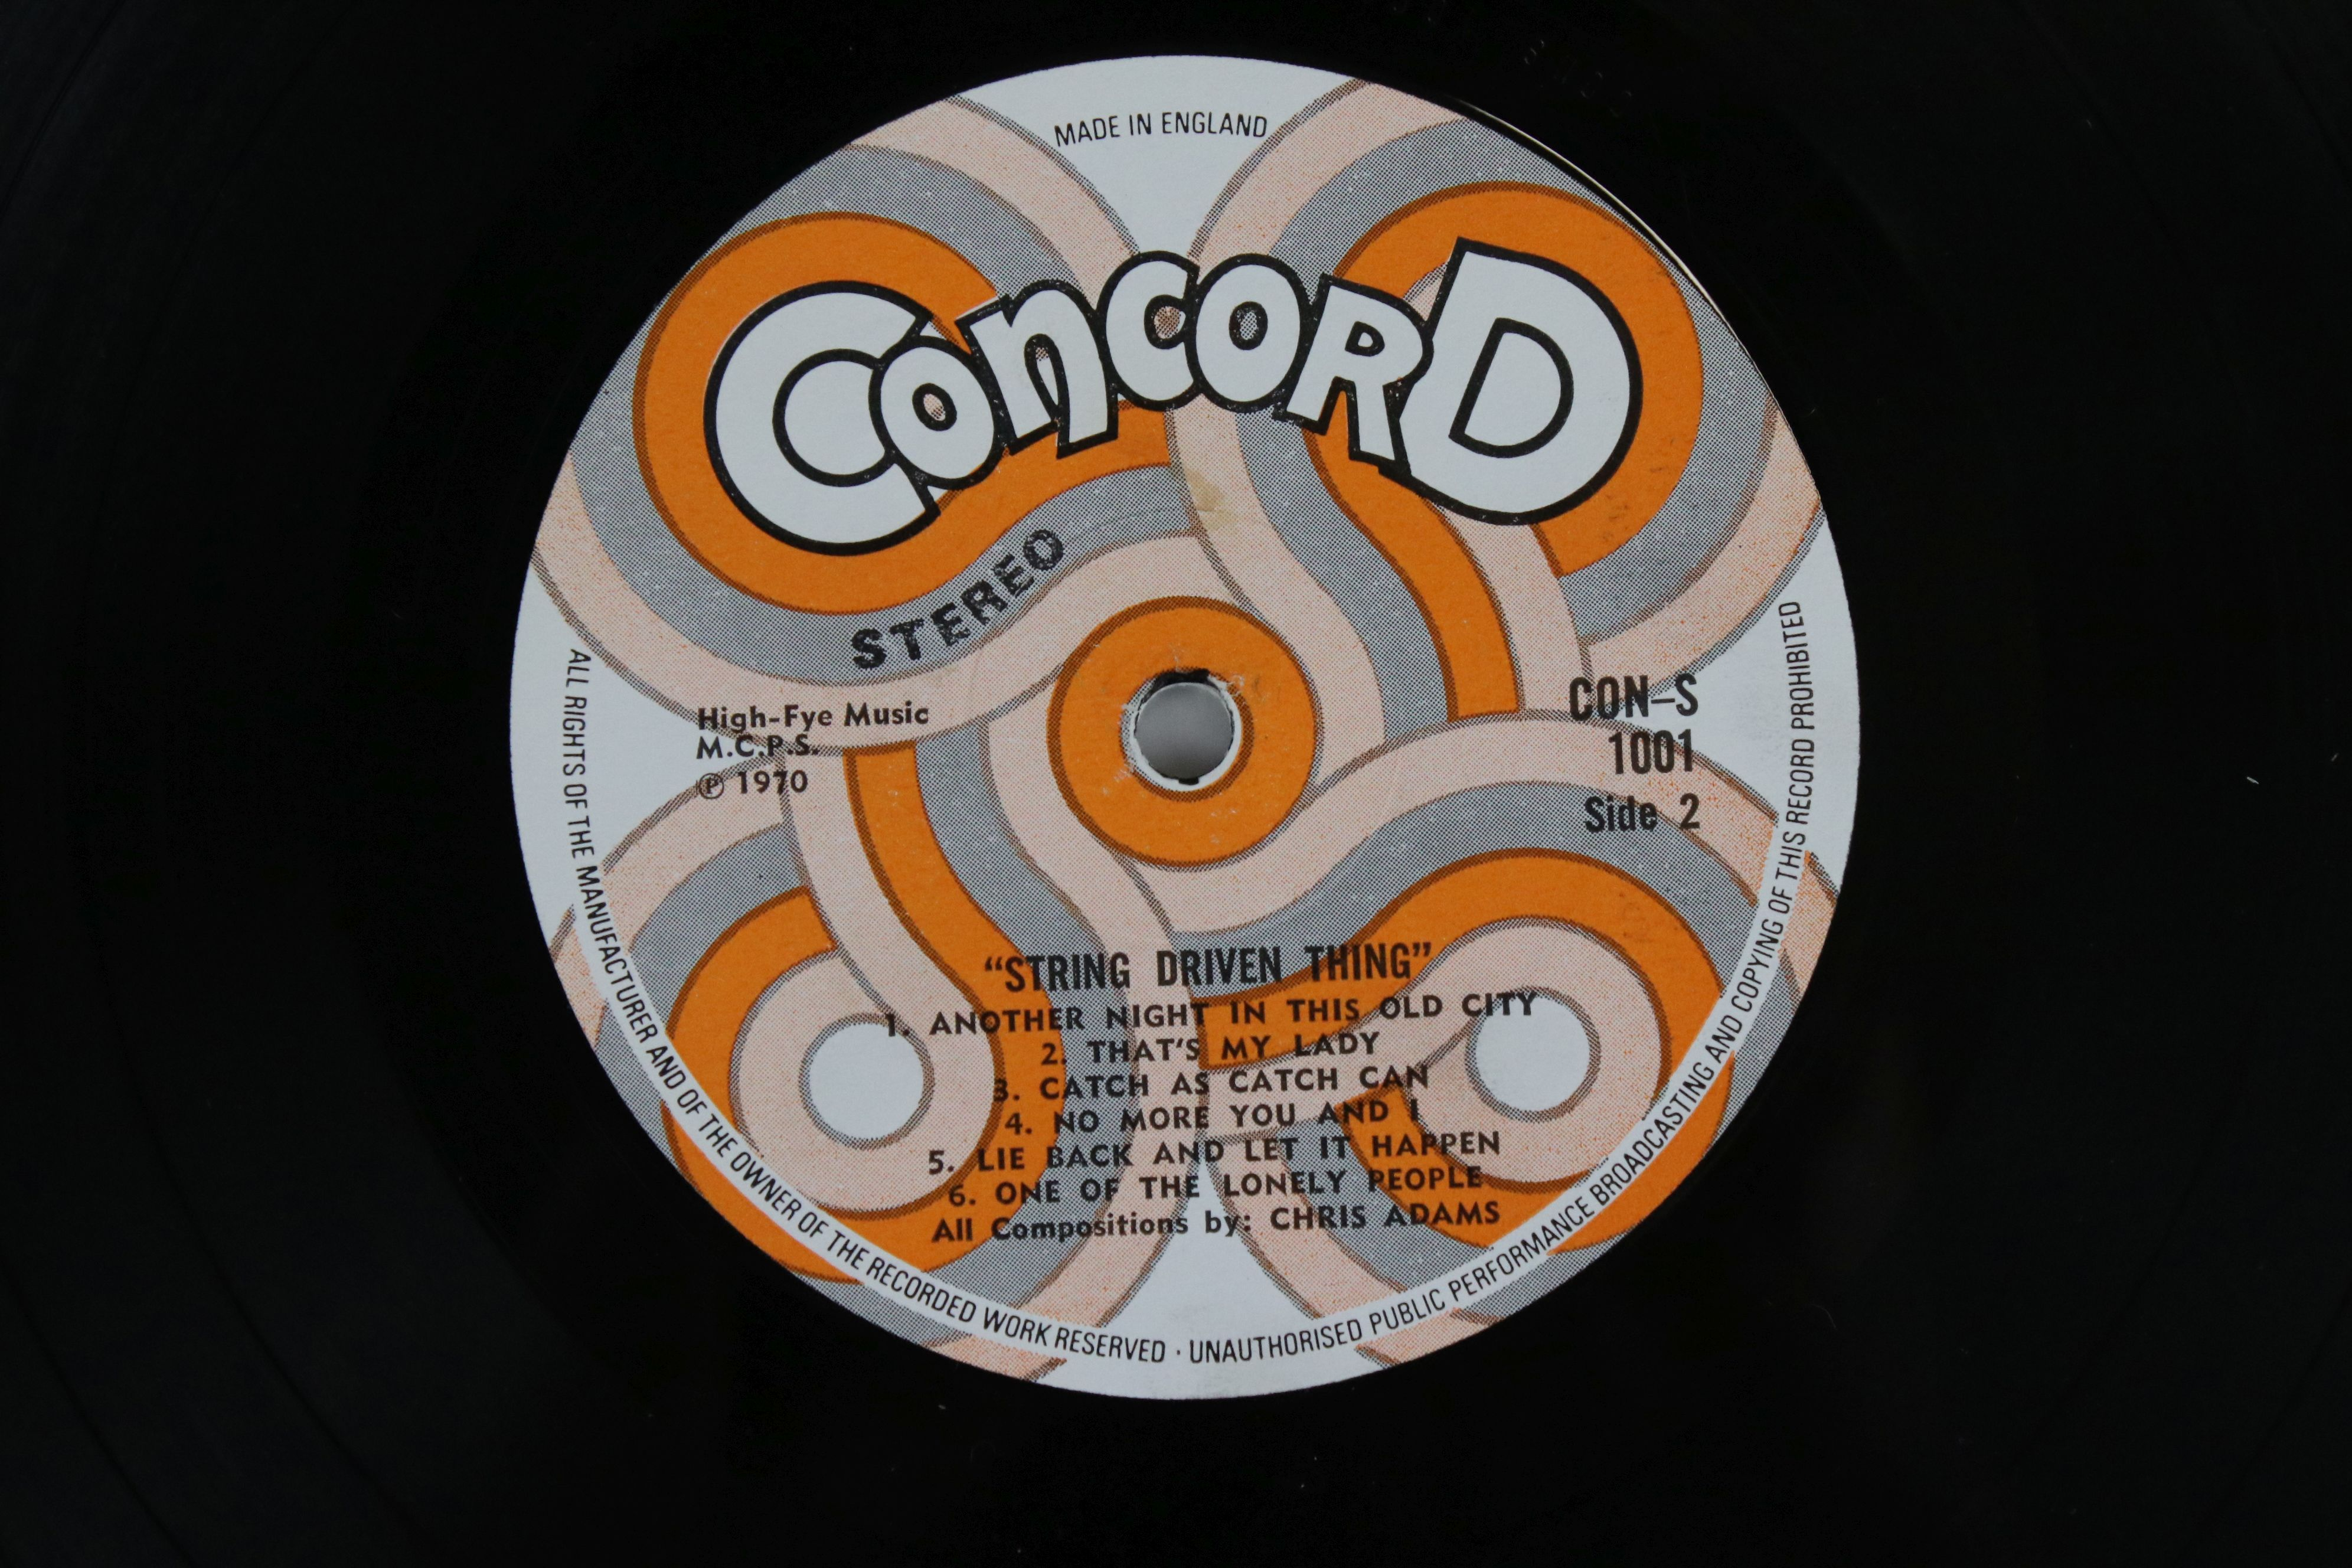 Vinyl - String Driven Thing self titled LP on Concord CON1001 Stereo, first album for the Concorde - Image 4 of 4